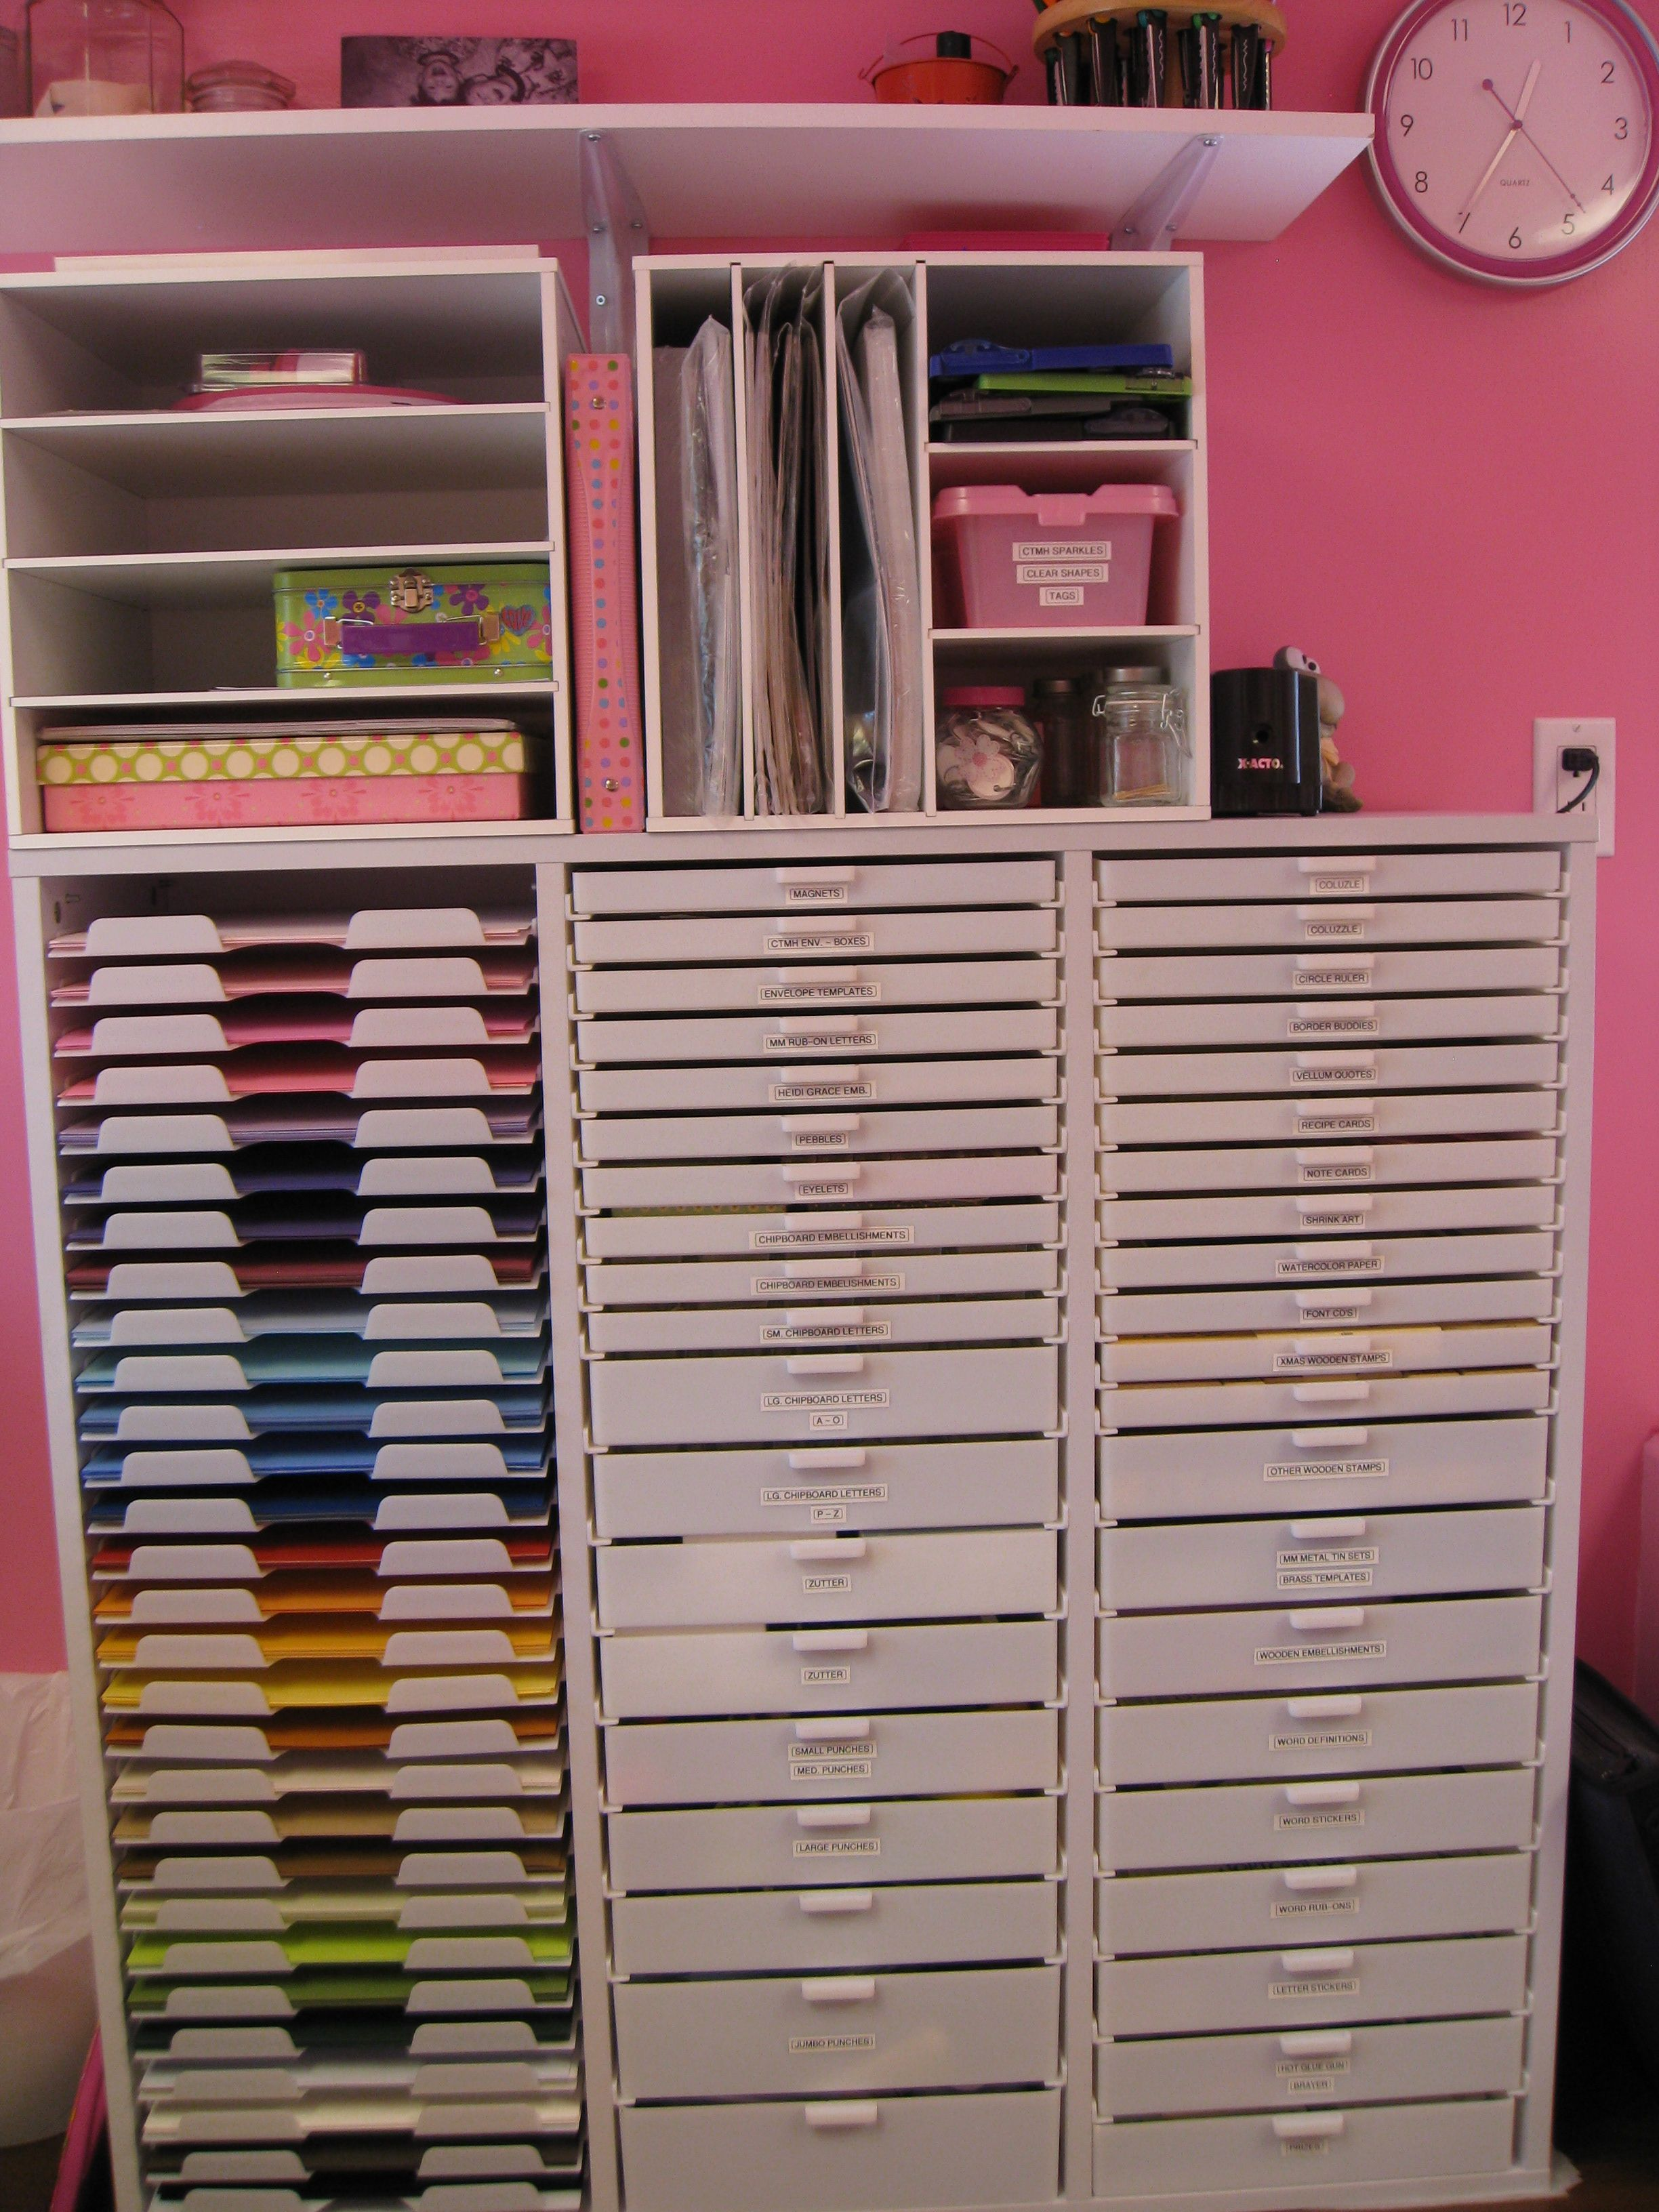 How to store scrapbook paper - Scrapbook Paper Storage Storage Paper Punches Tools Wooden Stamps Wooden